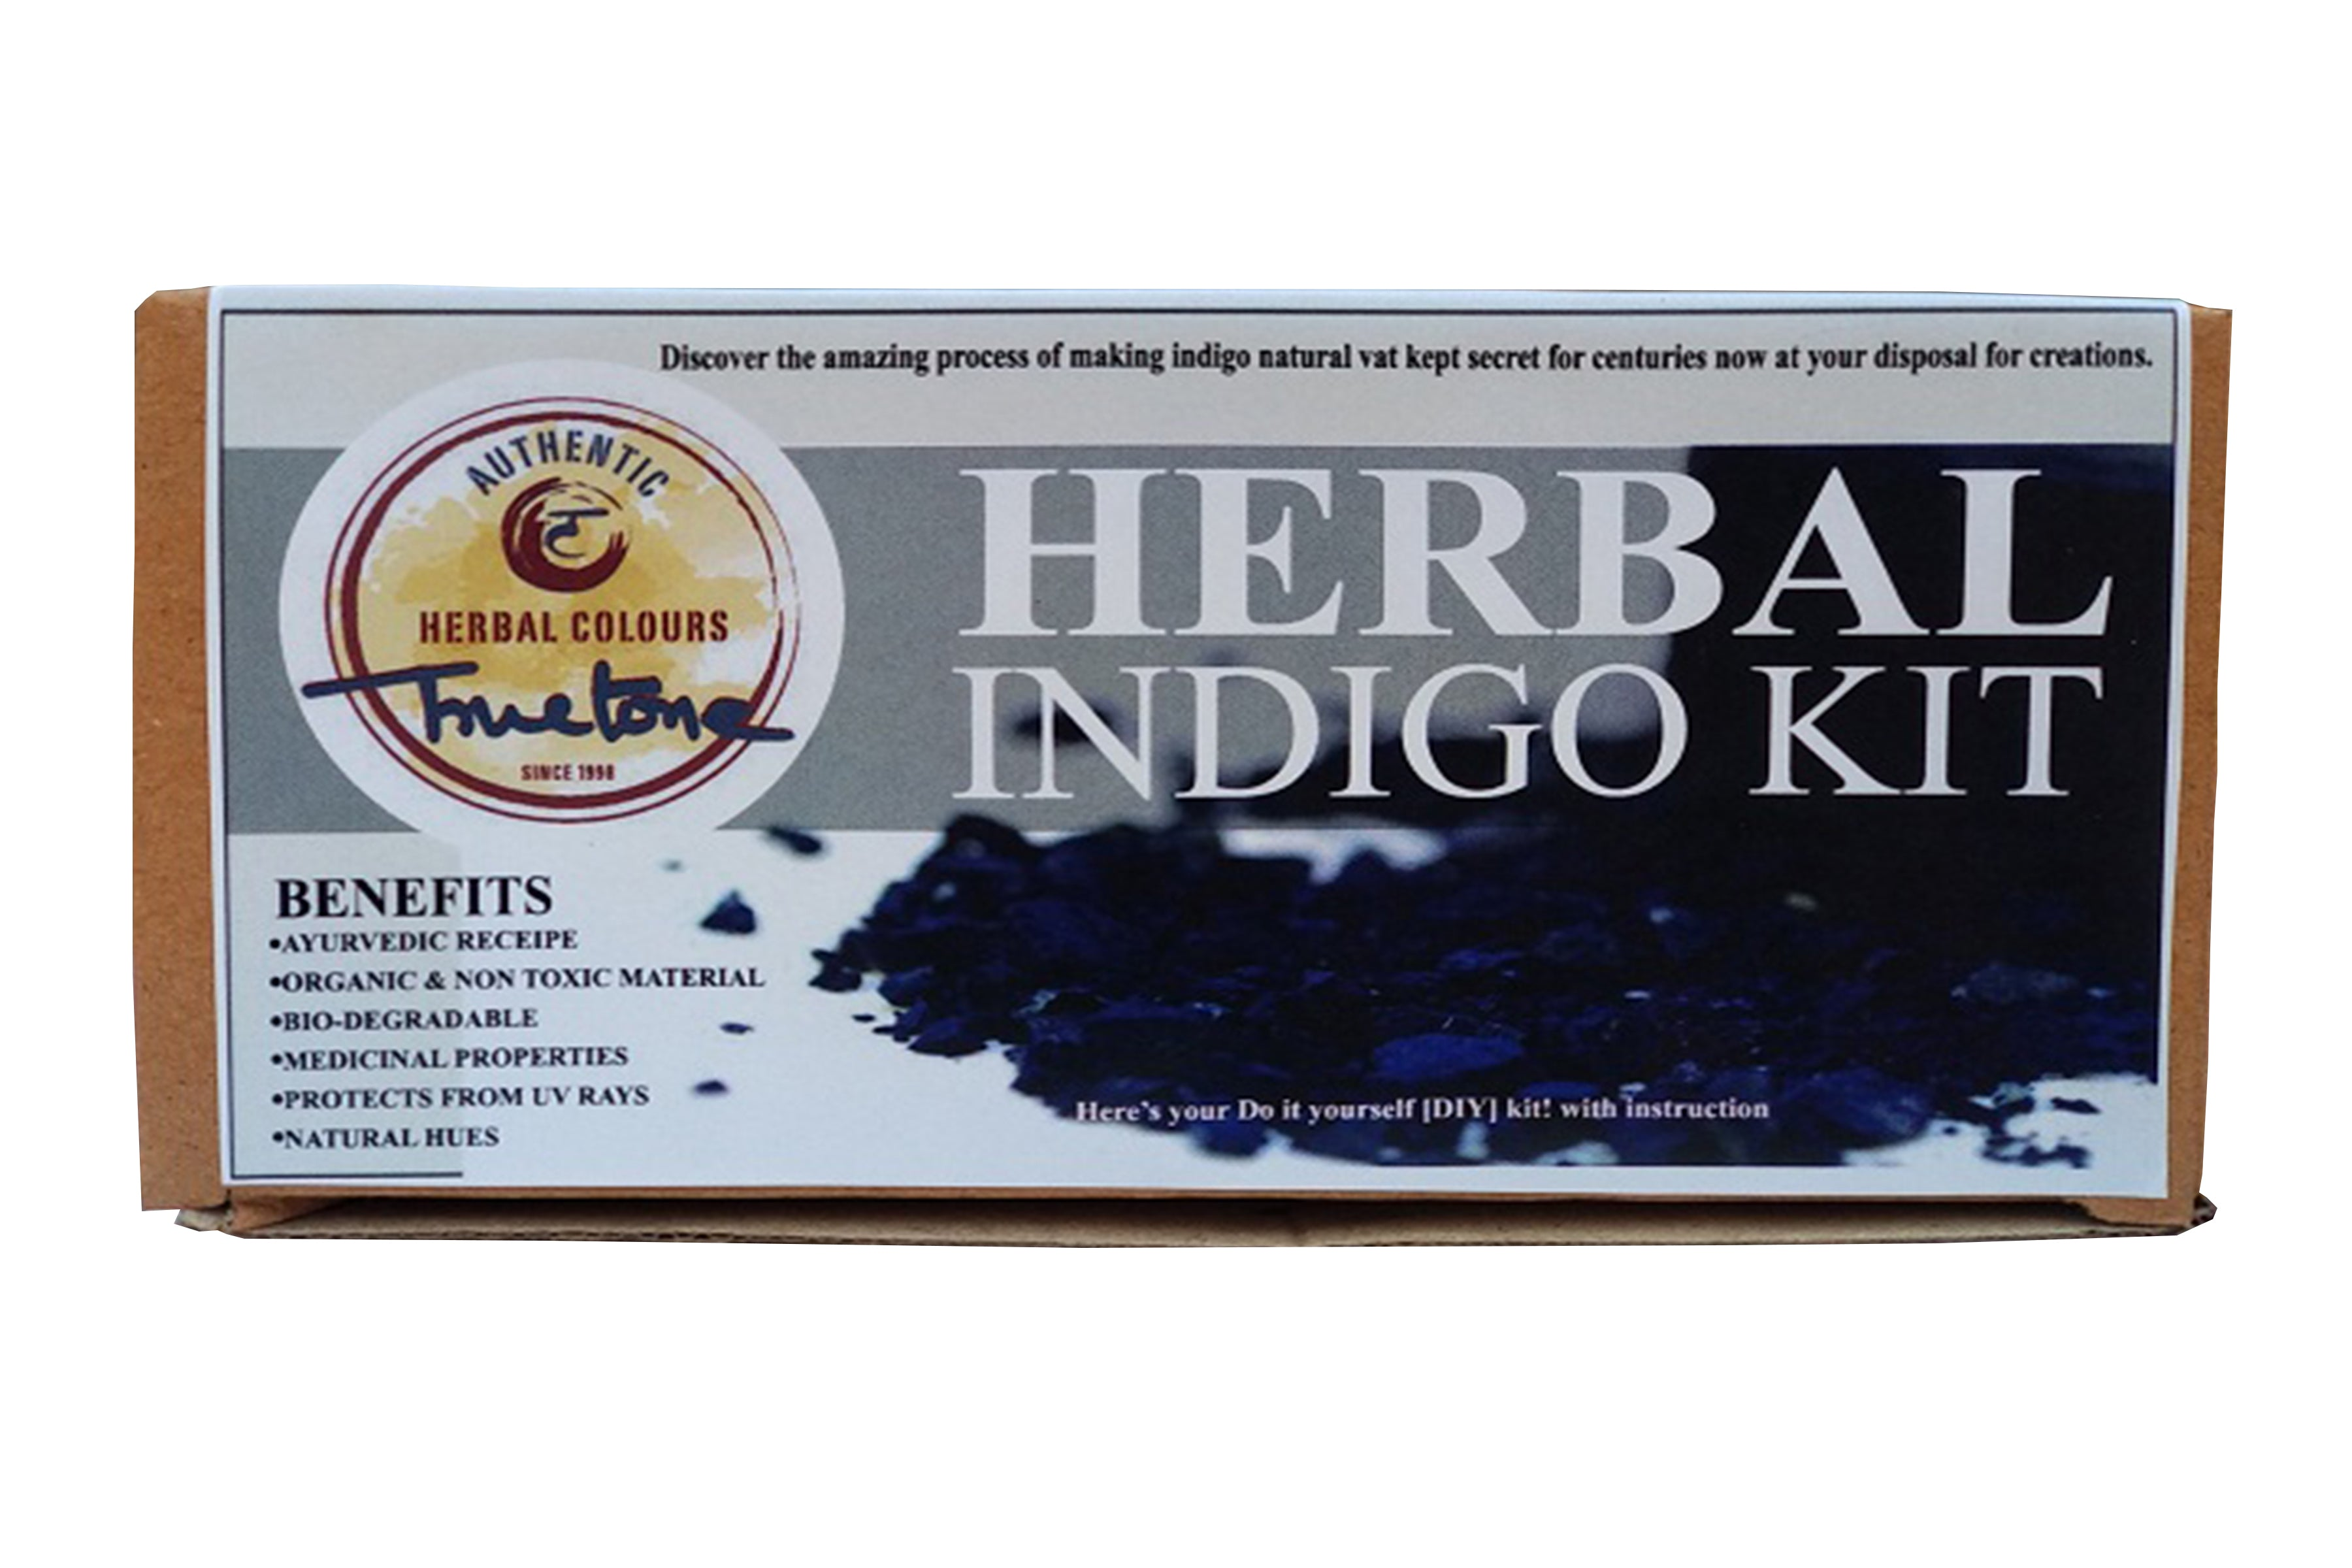 Active Indigo Kit